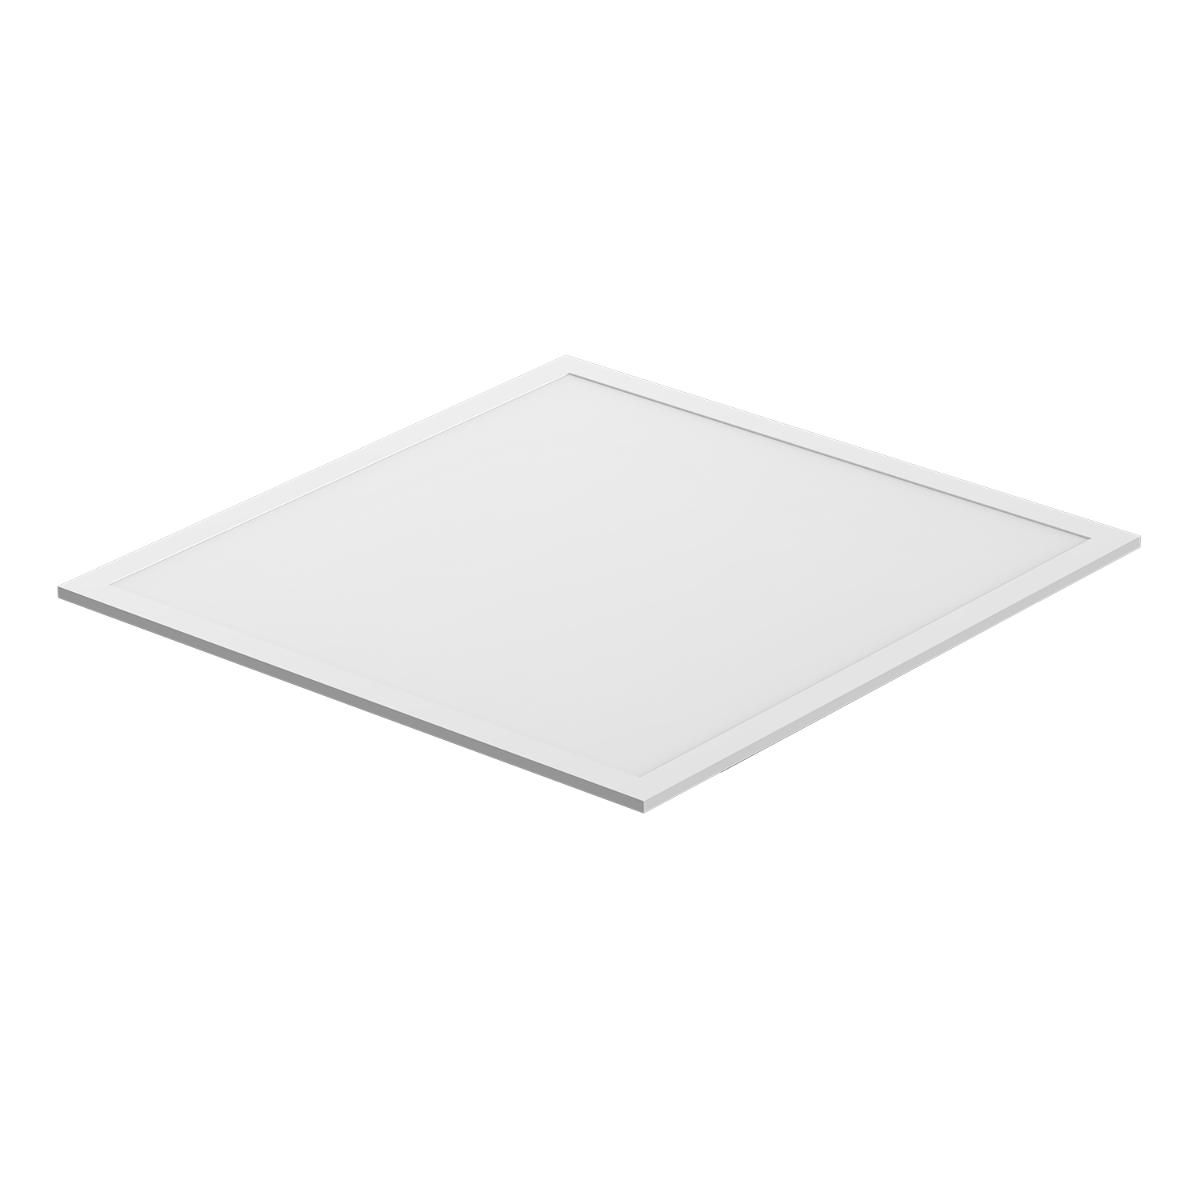 Noxion LED Panel Econox 32W Xitanium DALI 60x60cm 6500K 4400lm UGR <22 | Dali Dimmable - Replacer for 4x18W